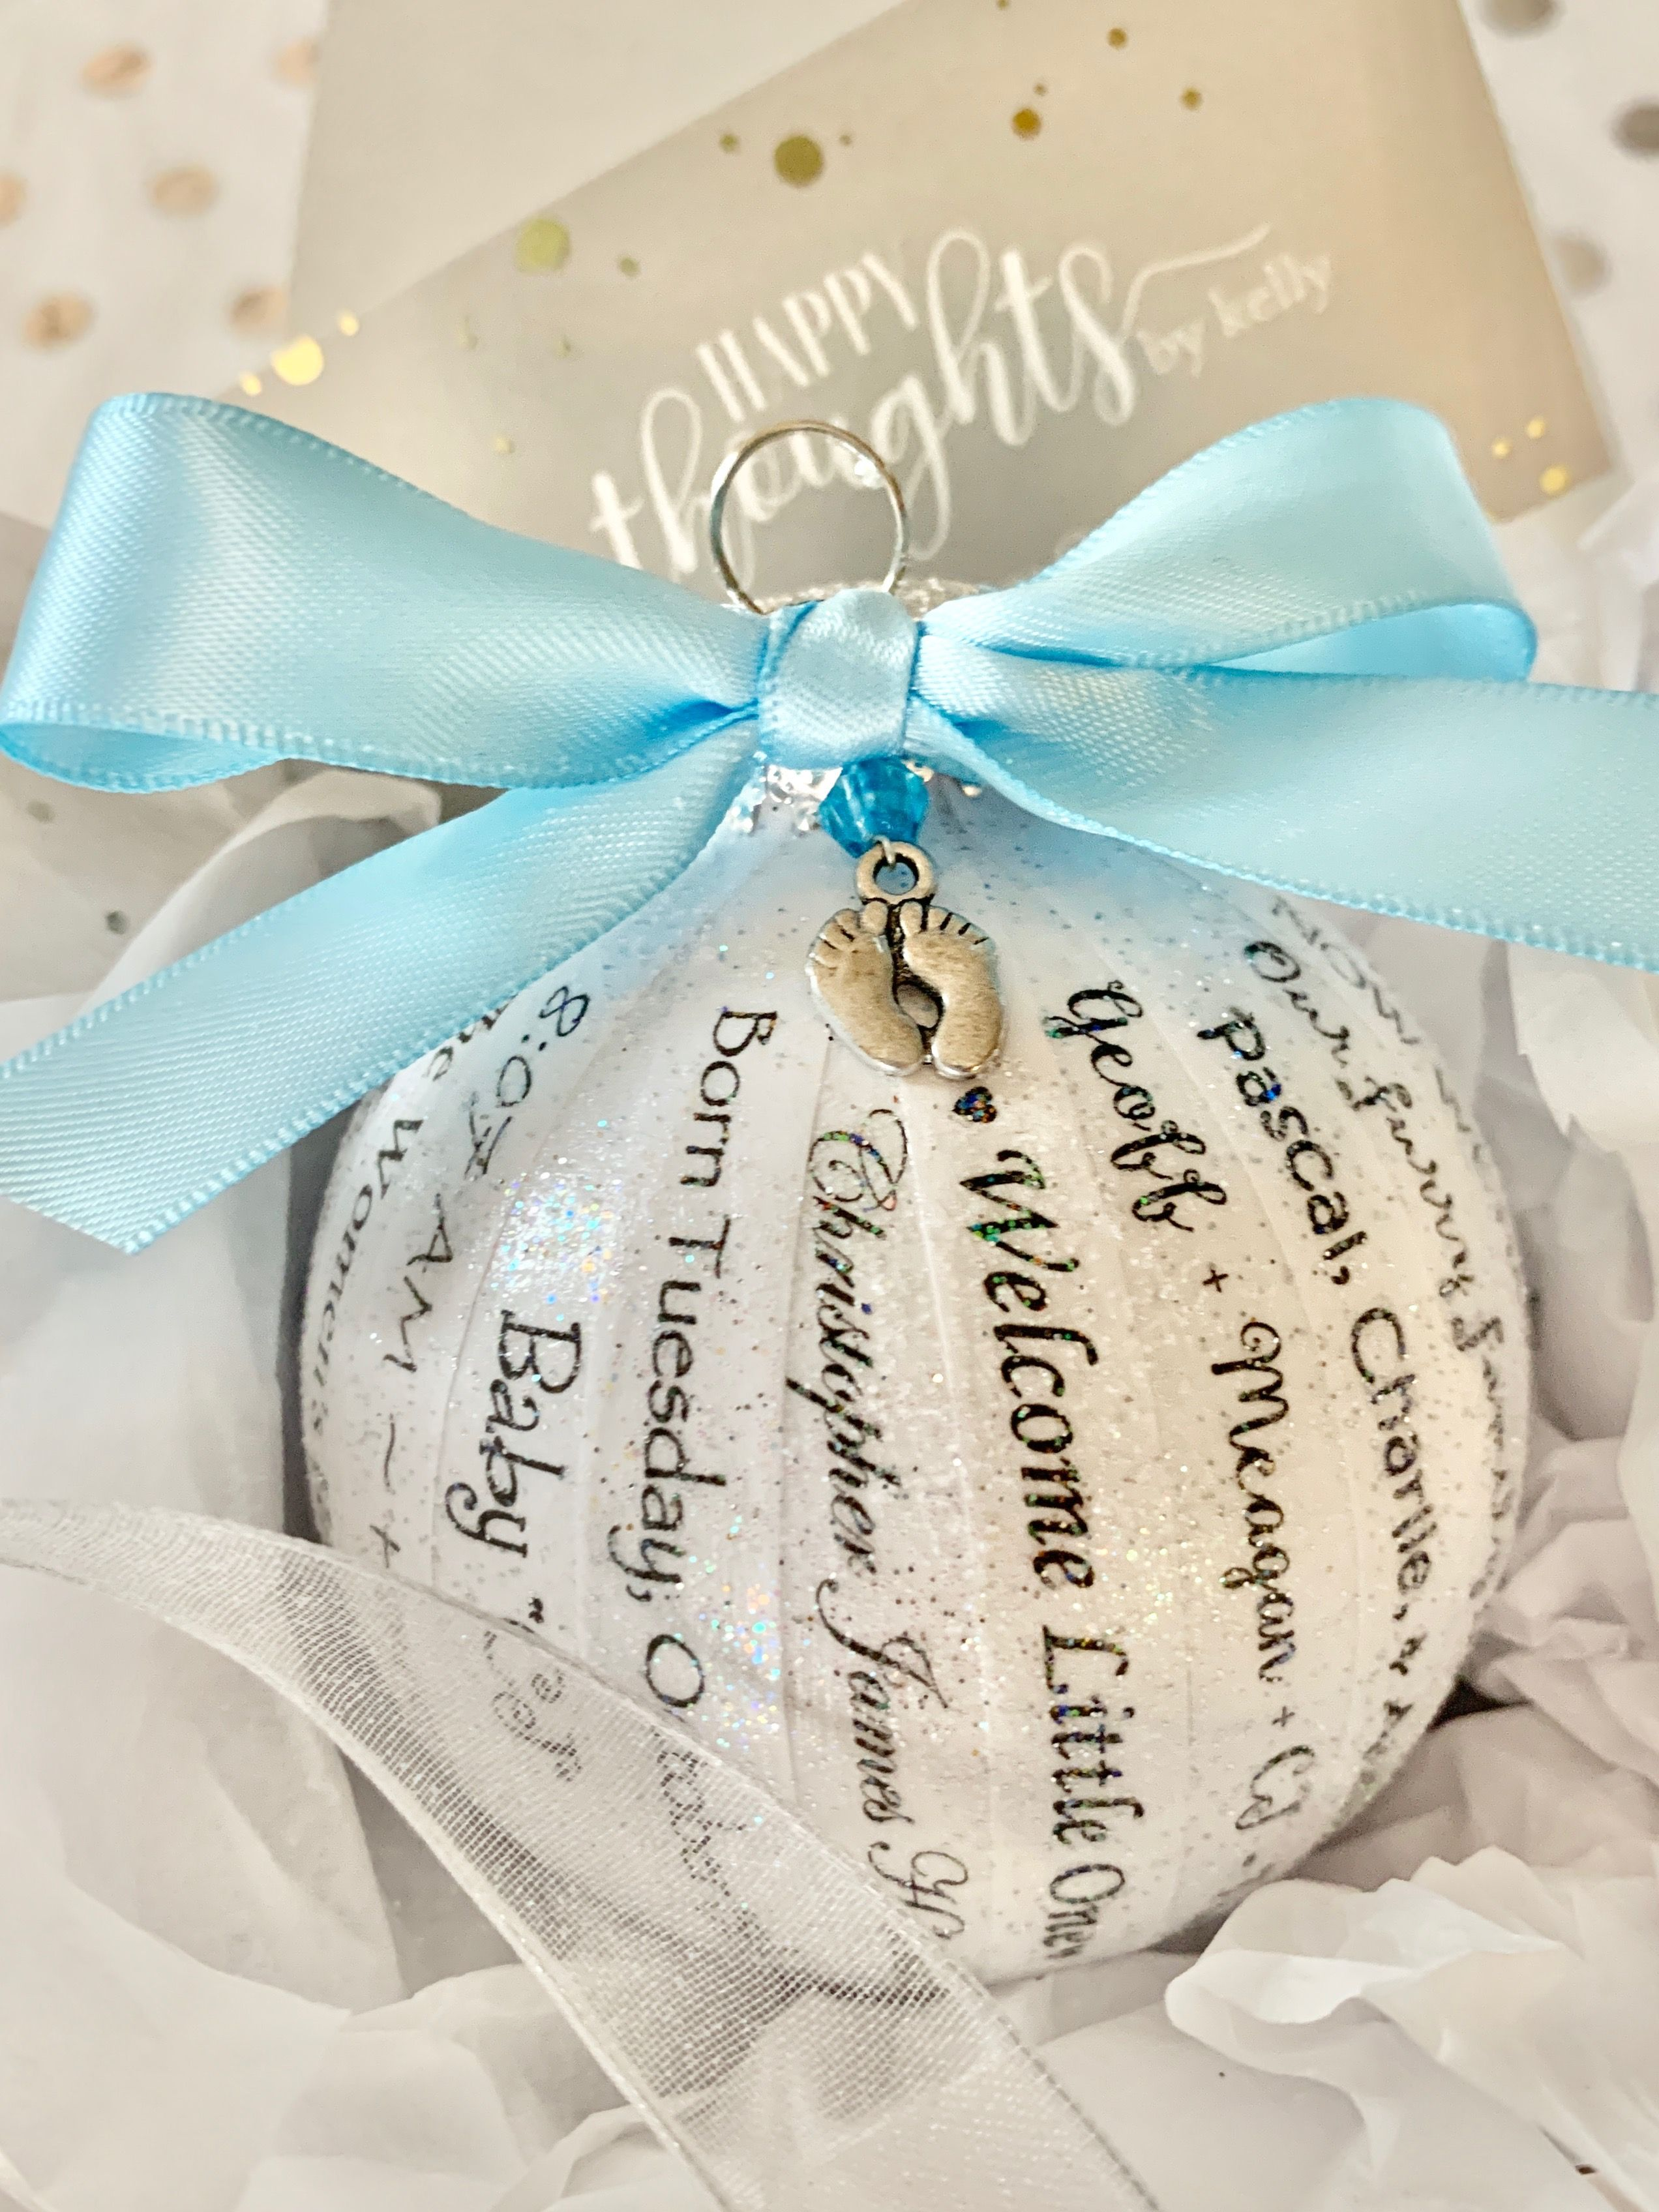 Personalized Baby Ornament Keepsake Gift For Parents Grandparents Baby Boy Baby Girl Personalized Baby Ornaments Baby Ornaments Memorial Ornaments